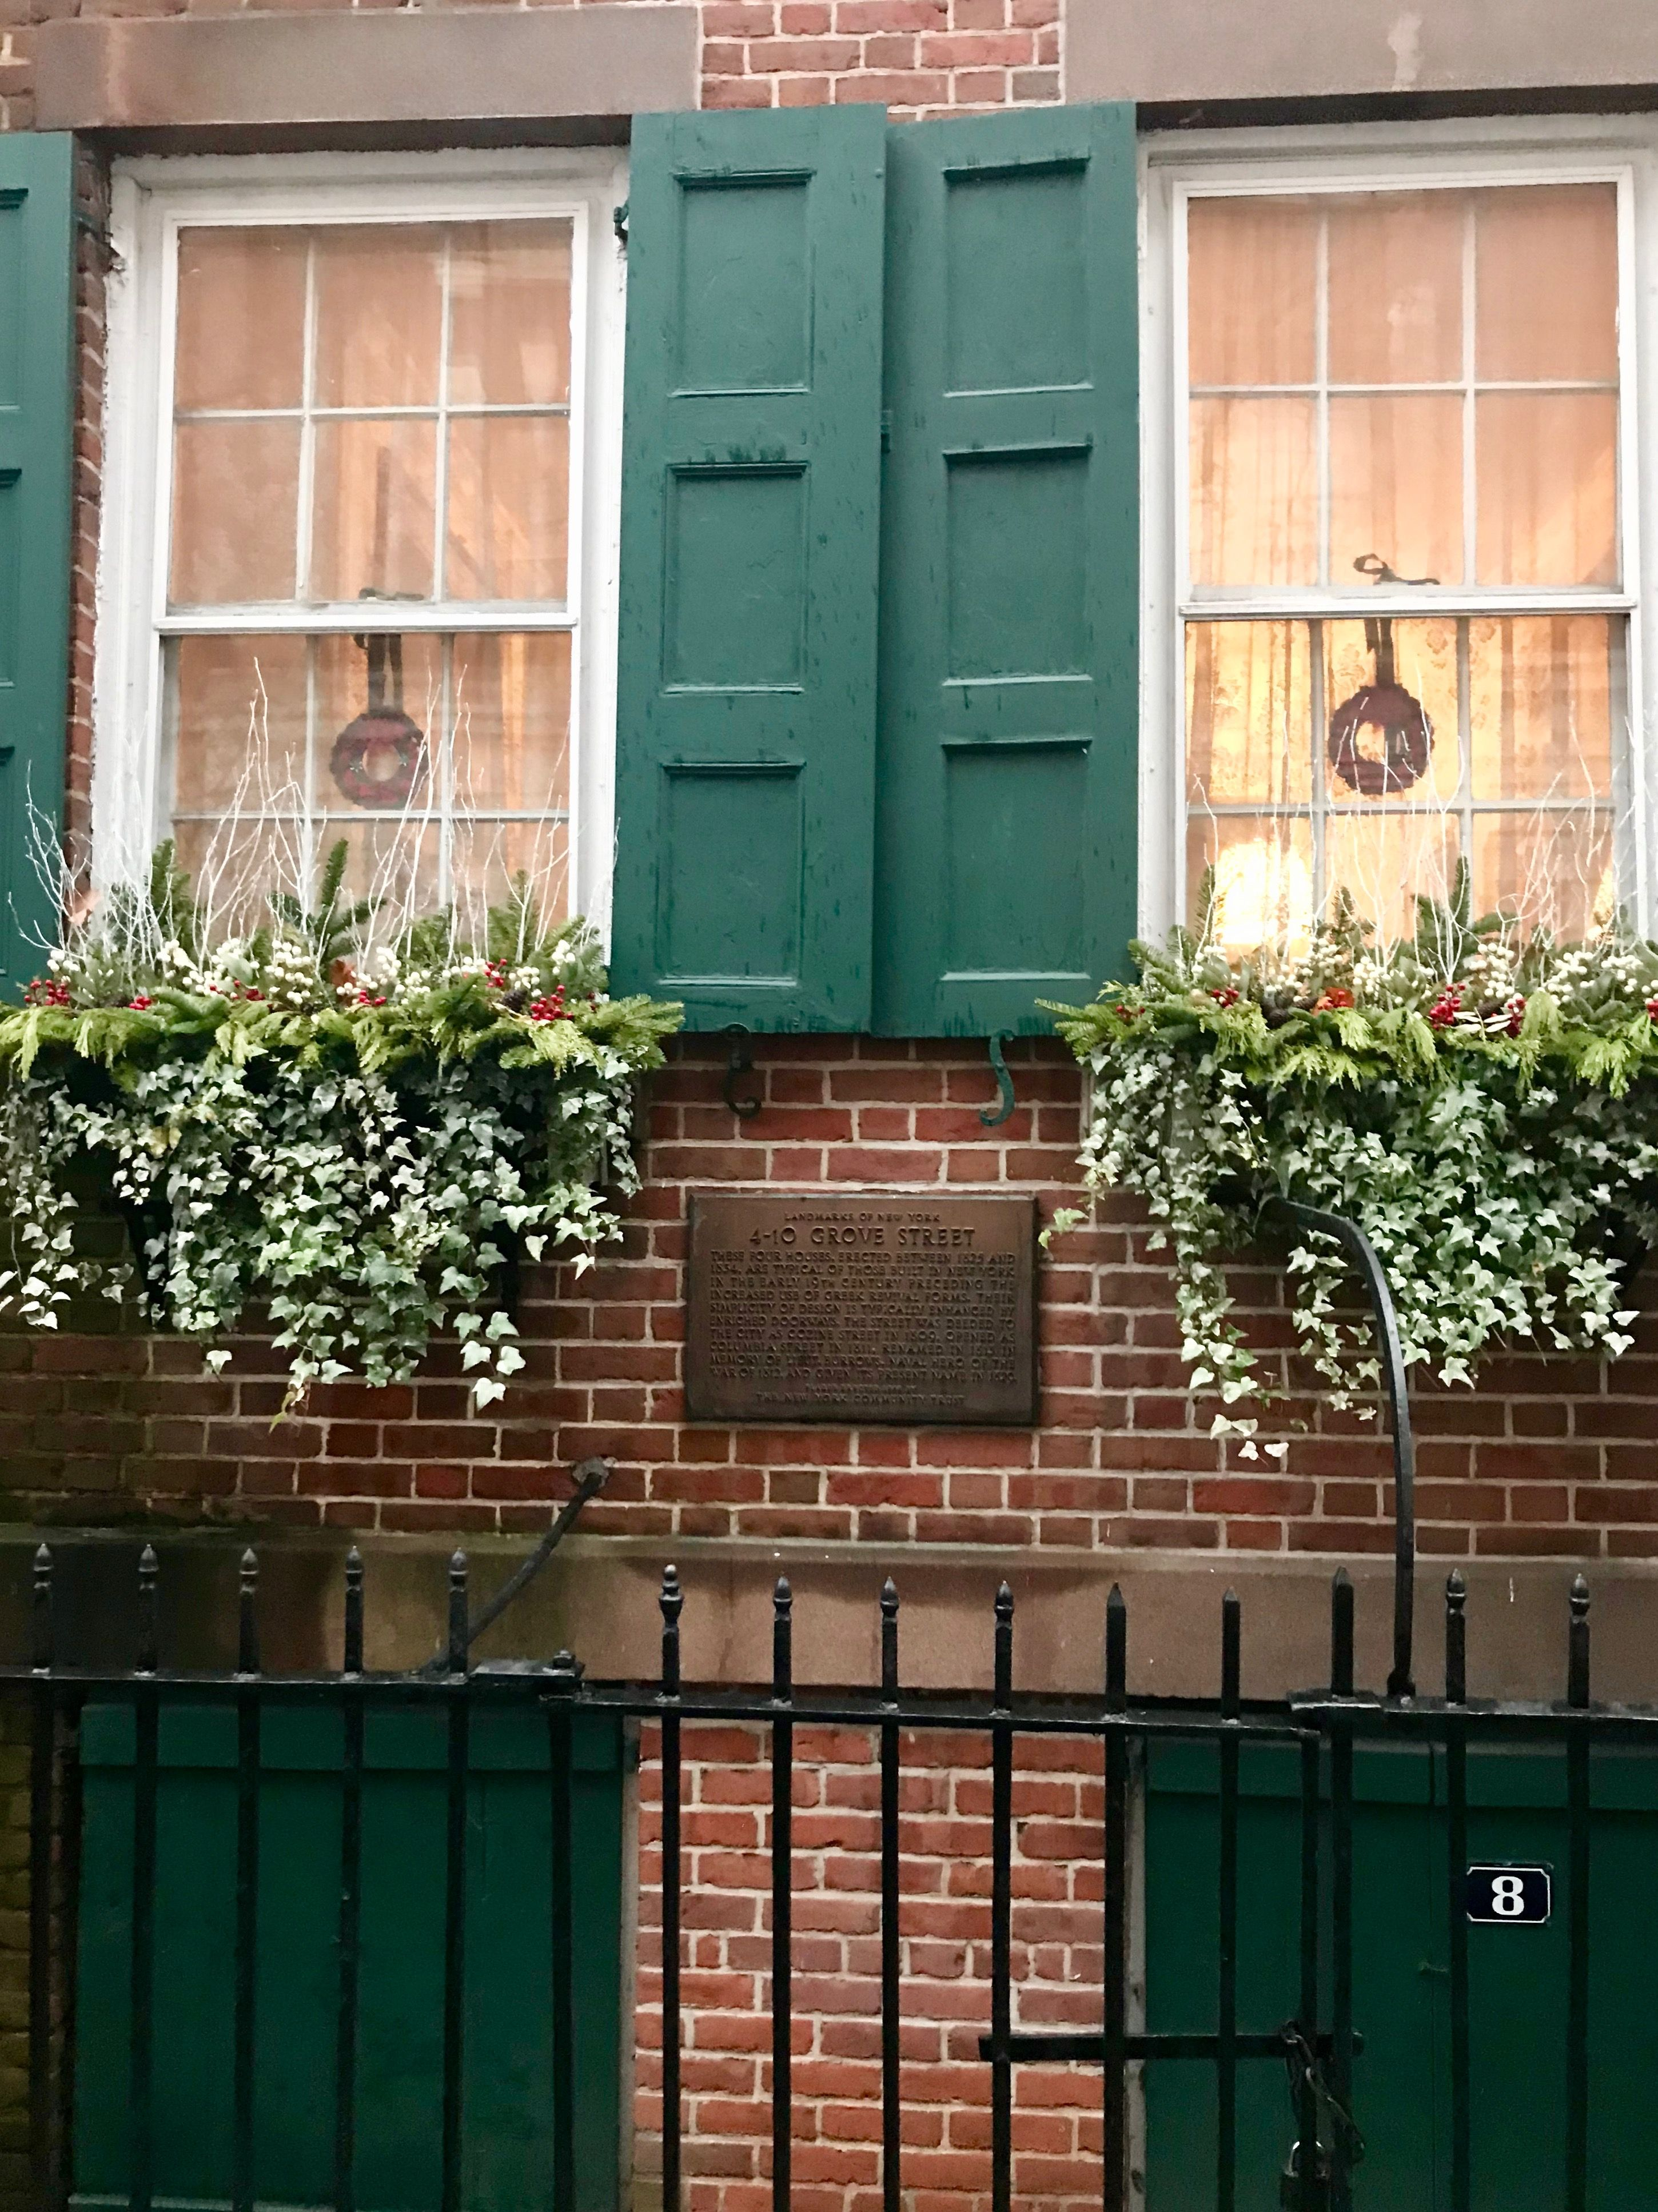 Window box ideas without flowers  pin by maureen armstrong on townhouse flower box  pinterest